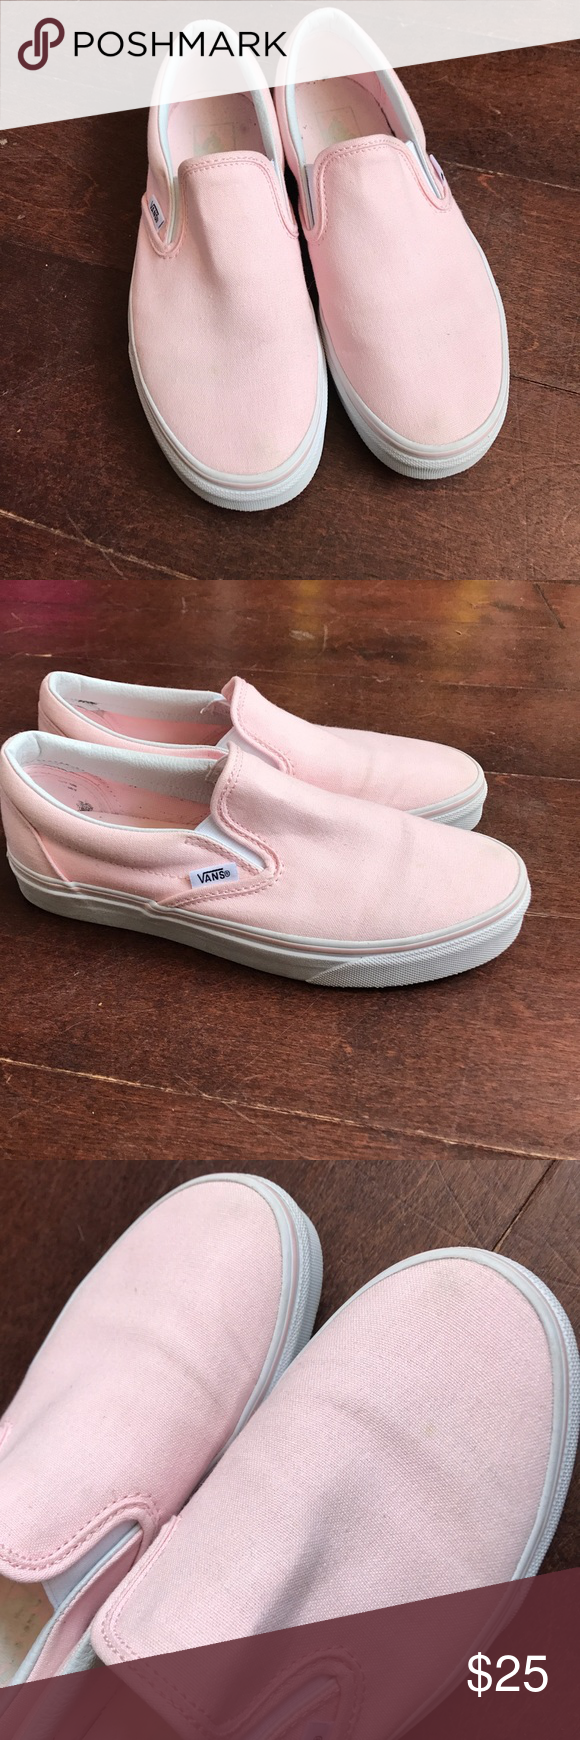 d6b018a9ee4c Ballerina Pink Classic Slip Ons 🎀 worn a handful of times